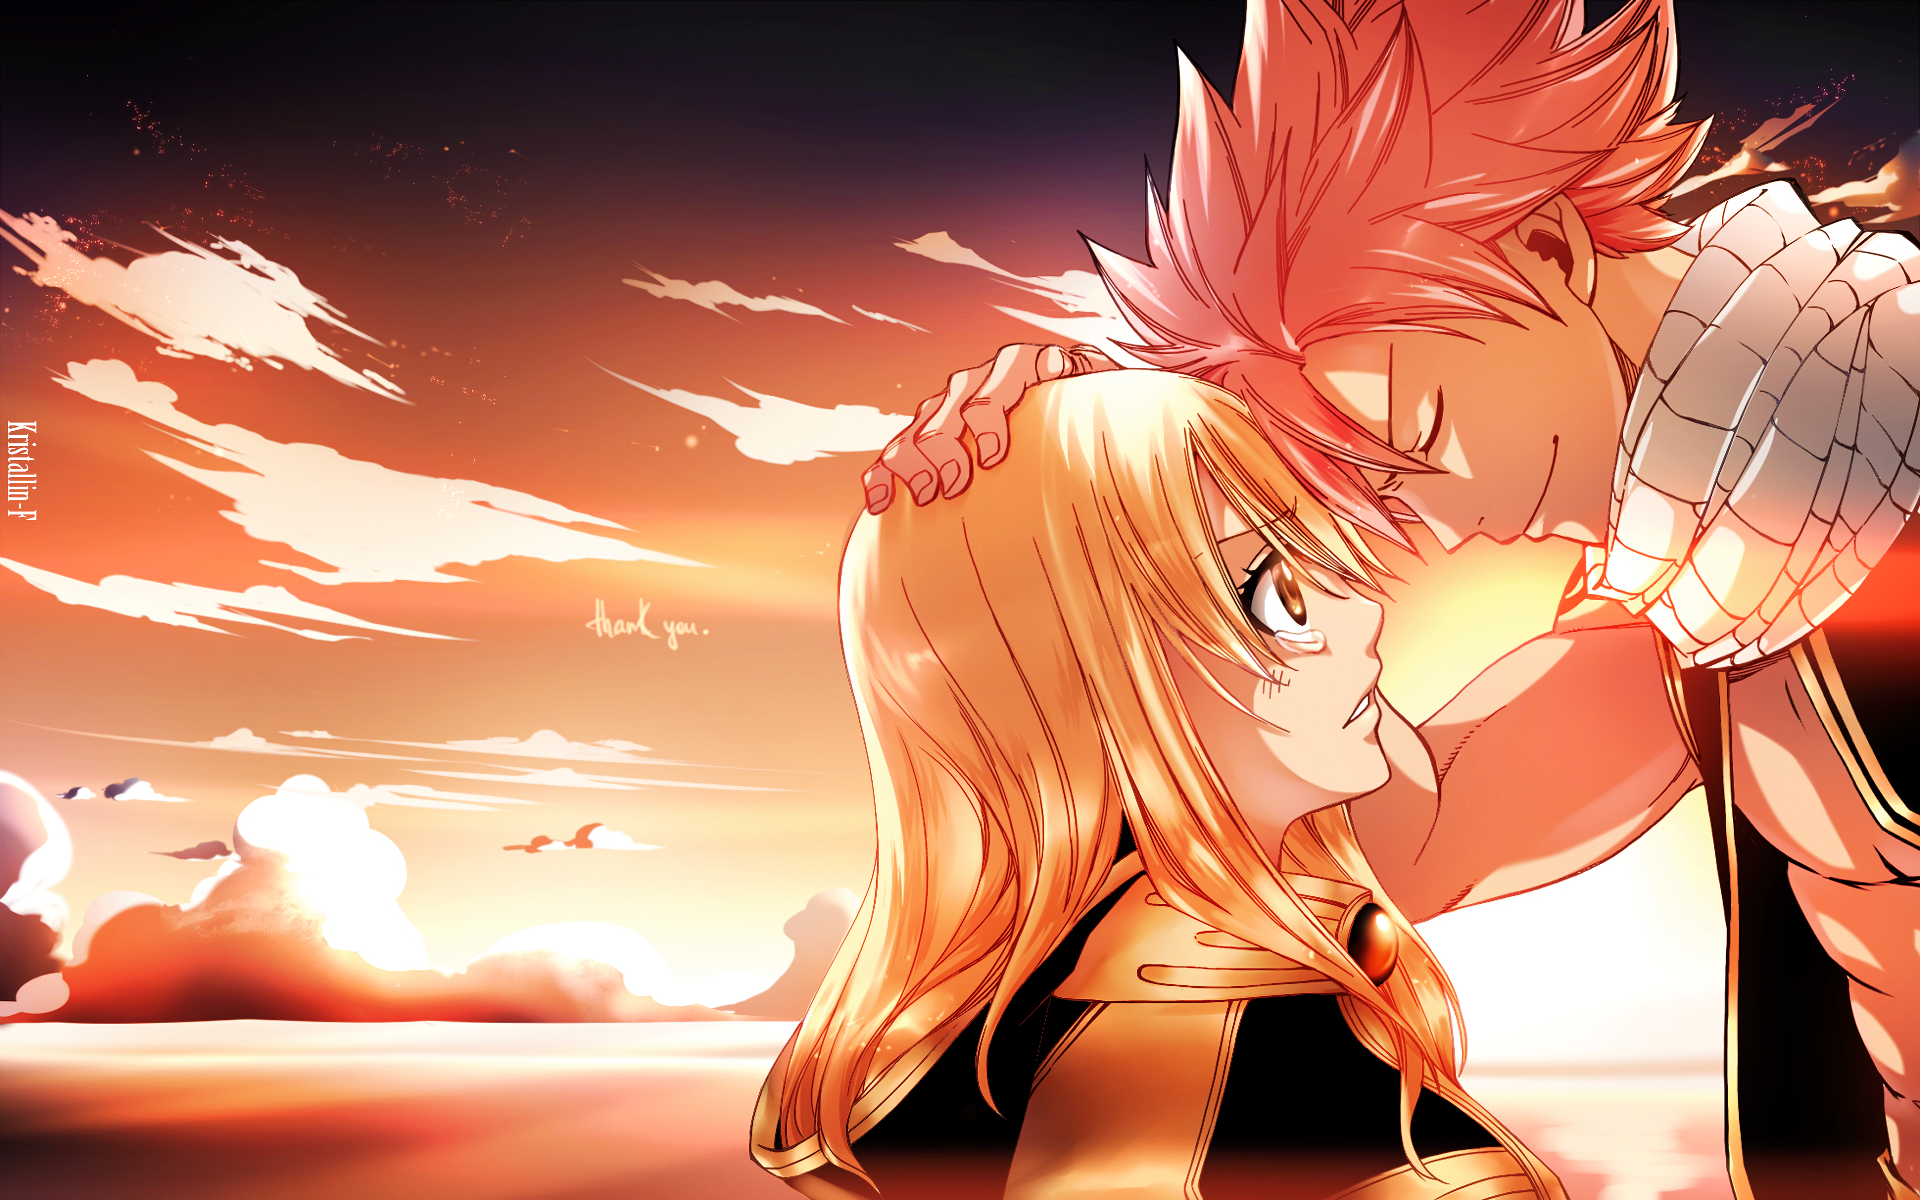 Fairy tail anime natsu and lucy